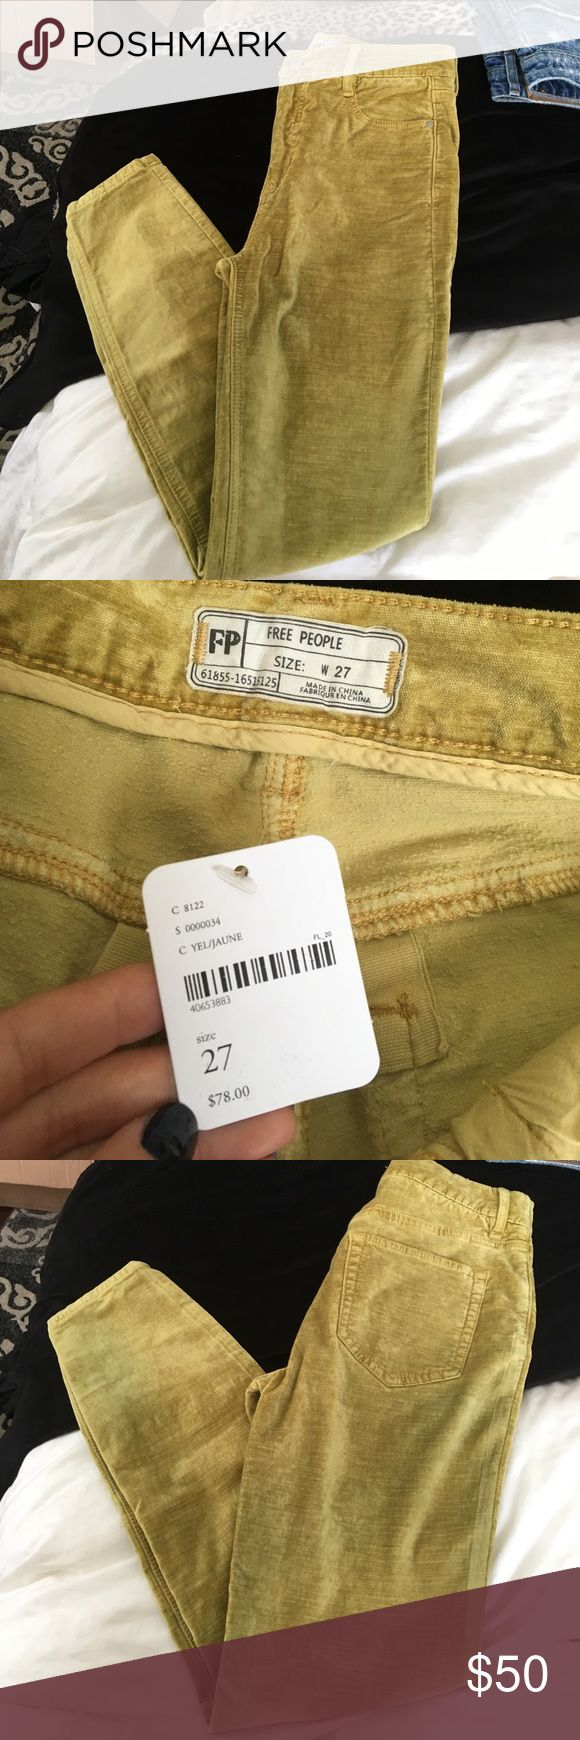 High waisted Free People jeans High waisted free People Jeans! lime/mustard green velvety pants. NWT Free People Jeans Skinny